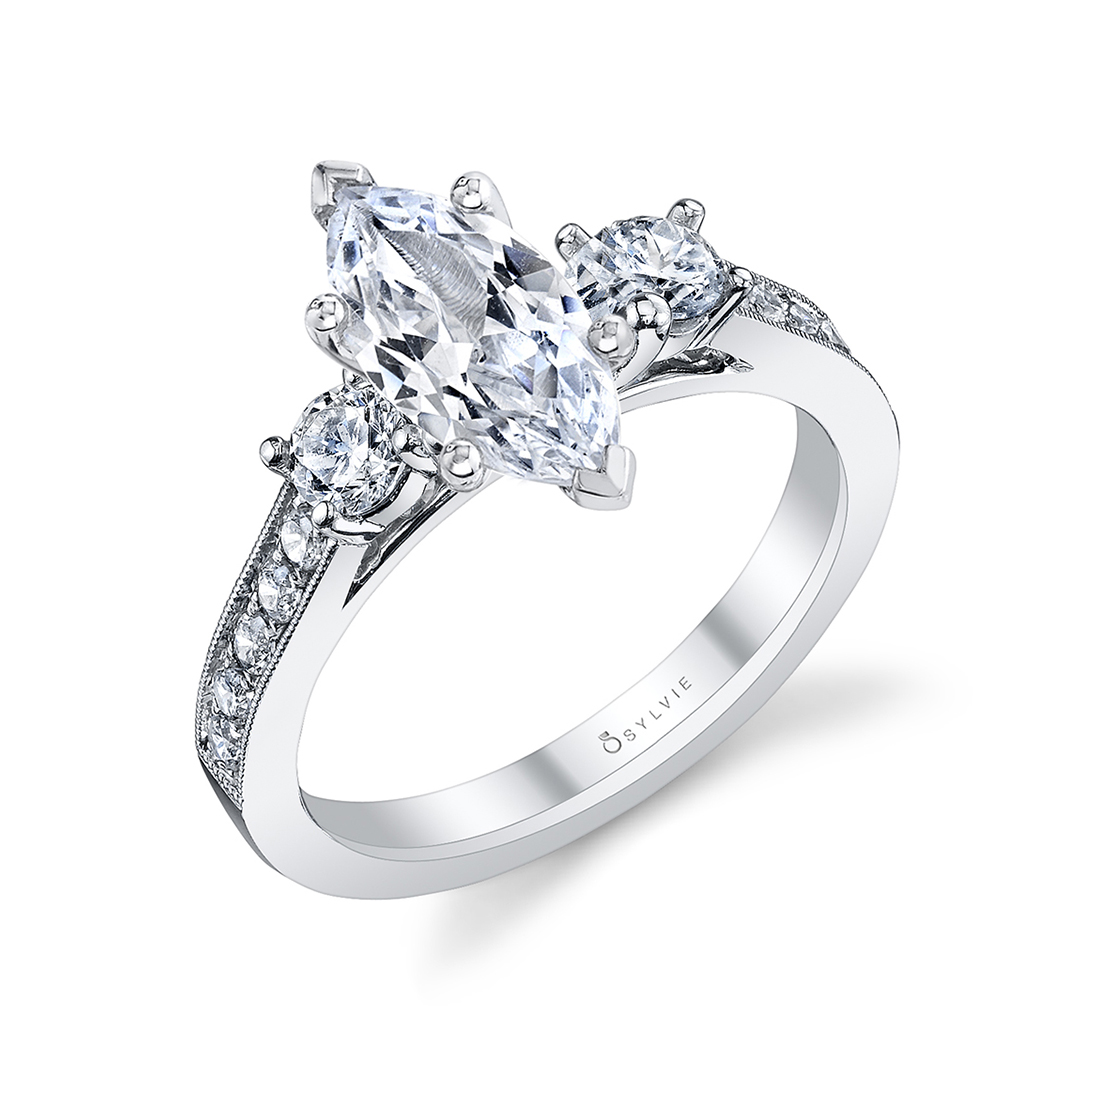 3 stone marquise engagement ring in white gold